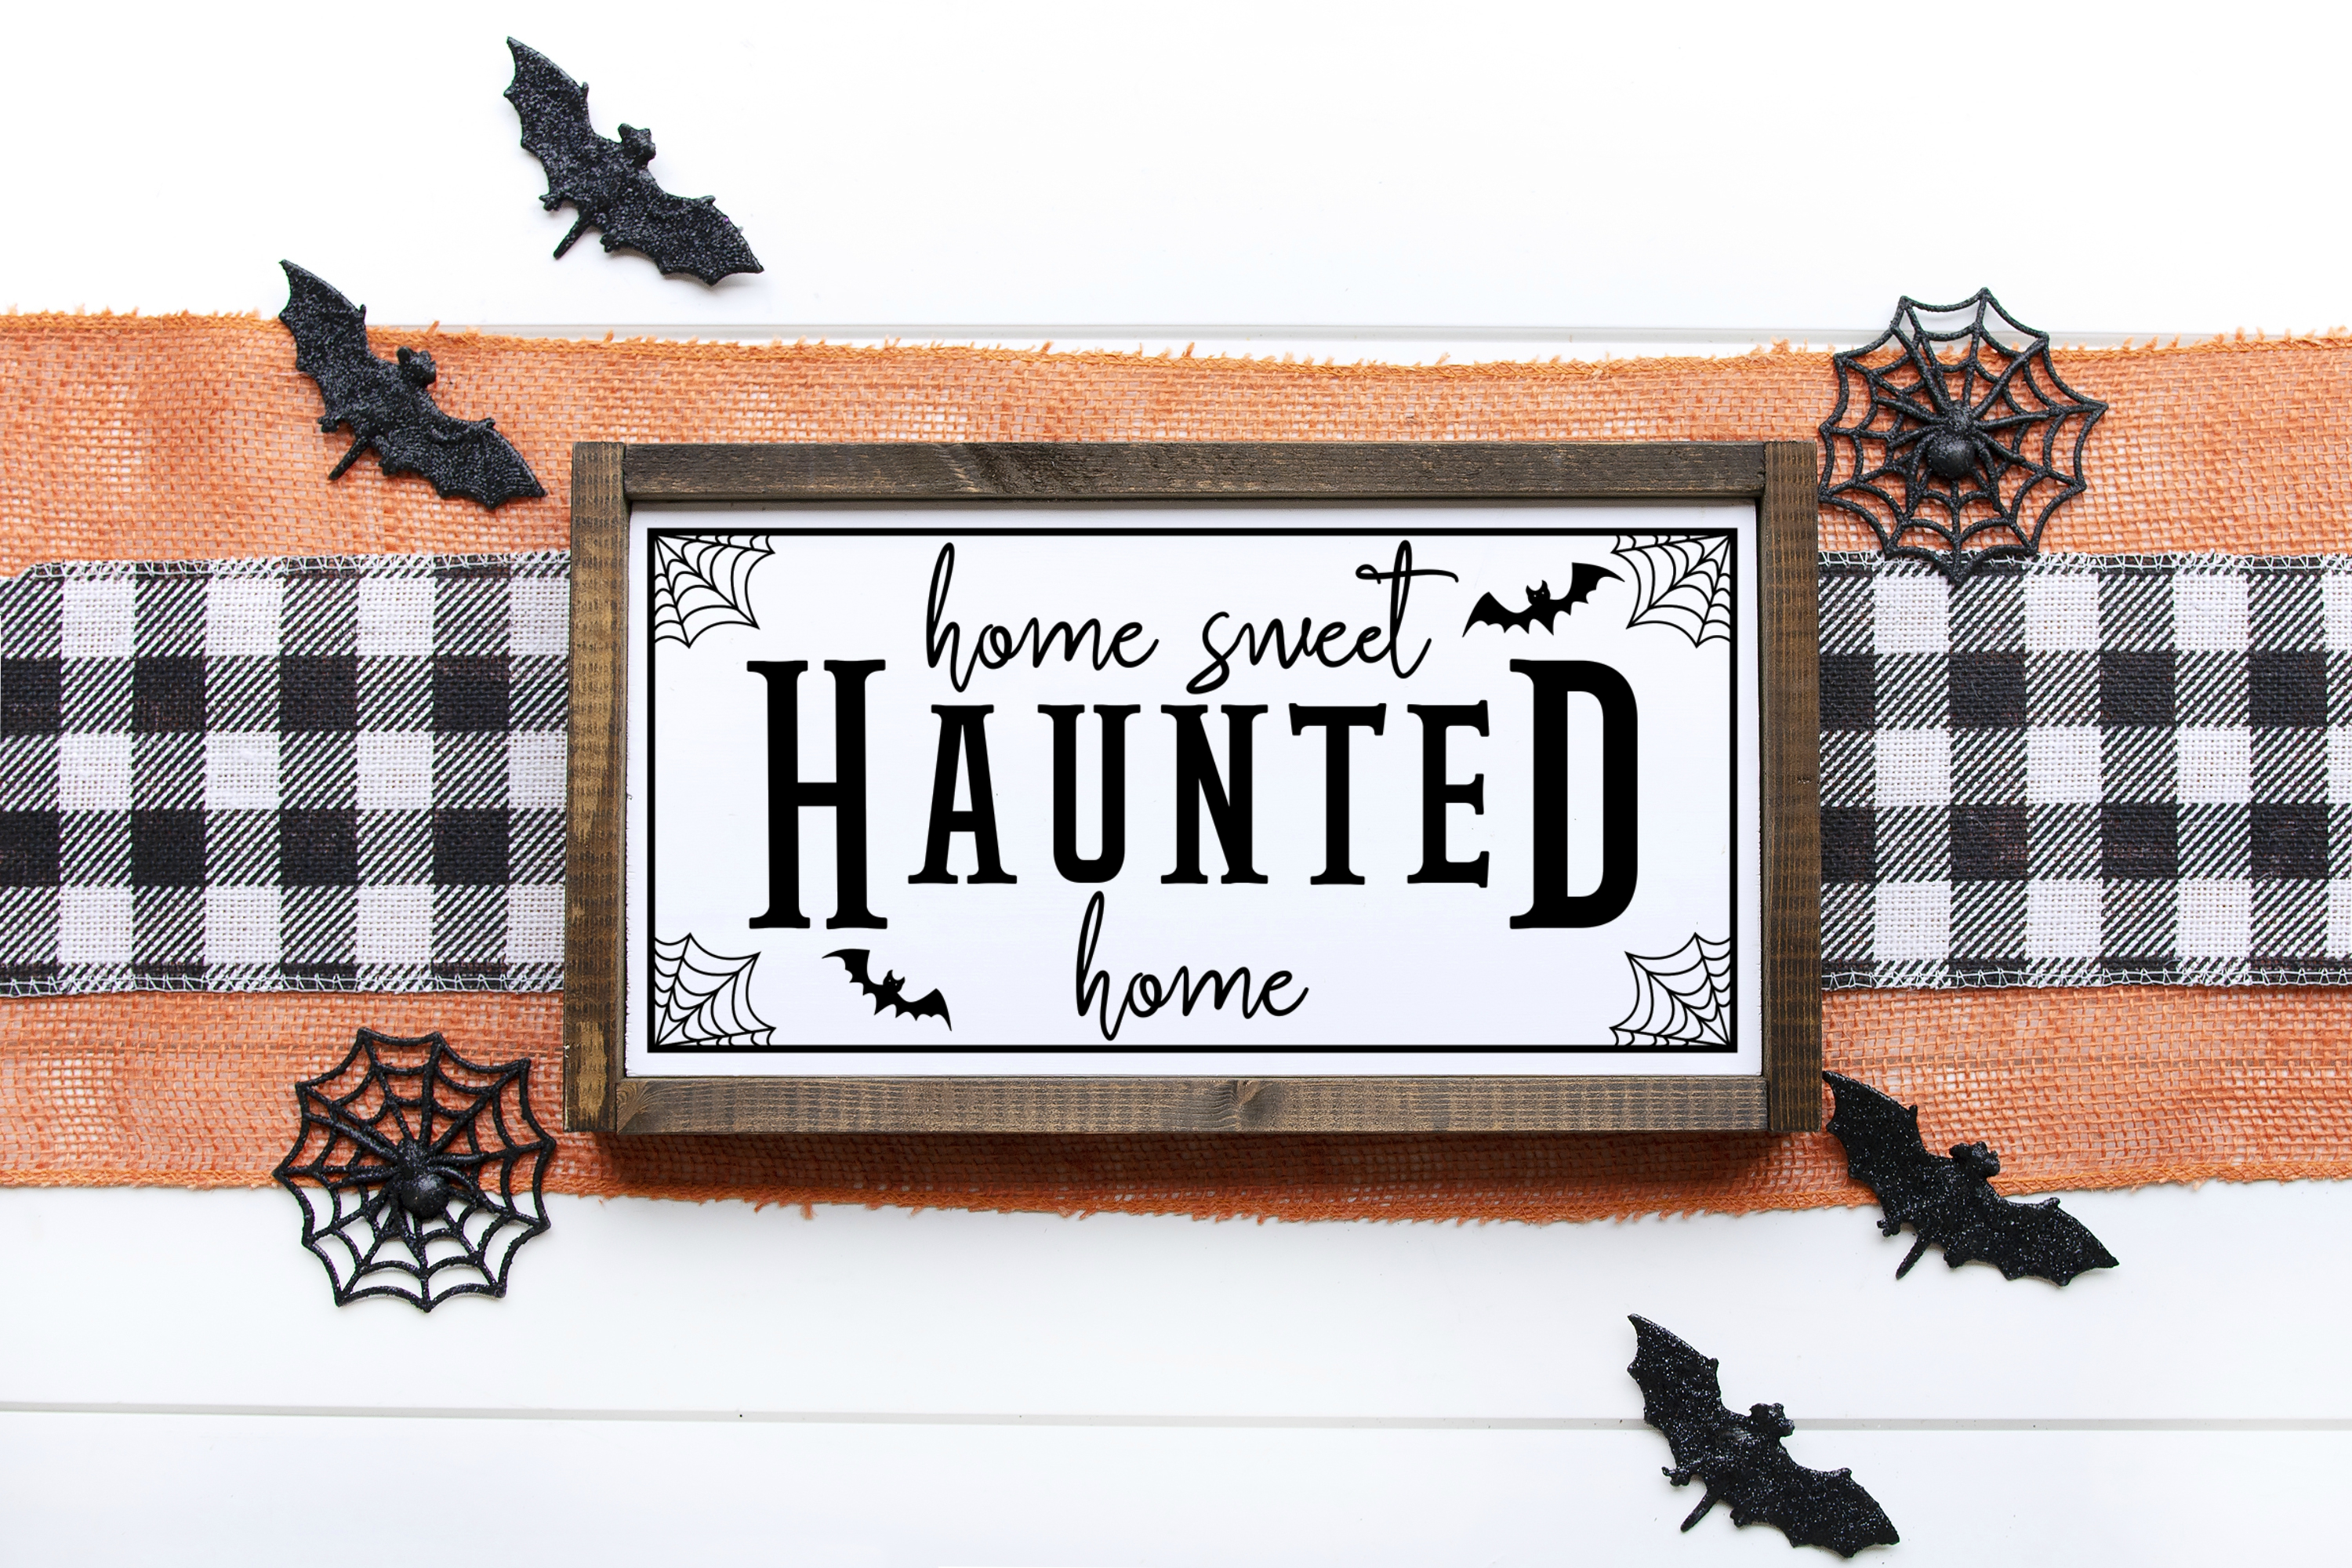 Home Sweet Haunted Home Halloween SVG Digital Cut File Sign example image 3